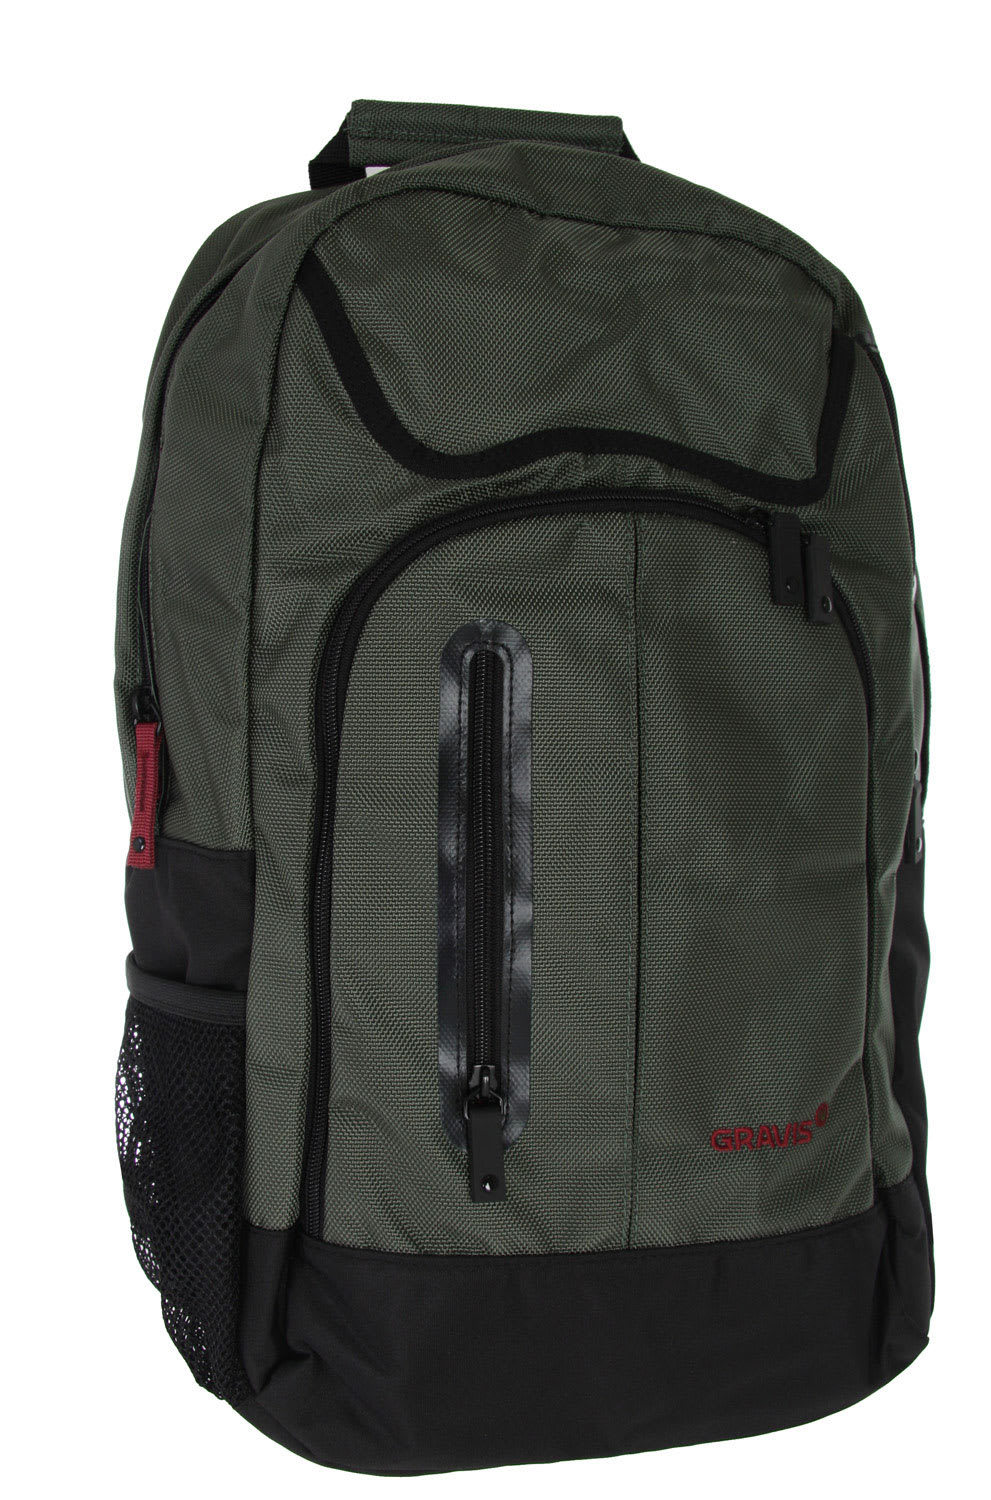 Gravis Sureshot Backpack Military